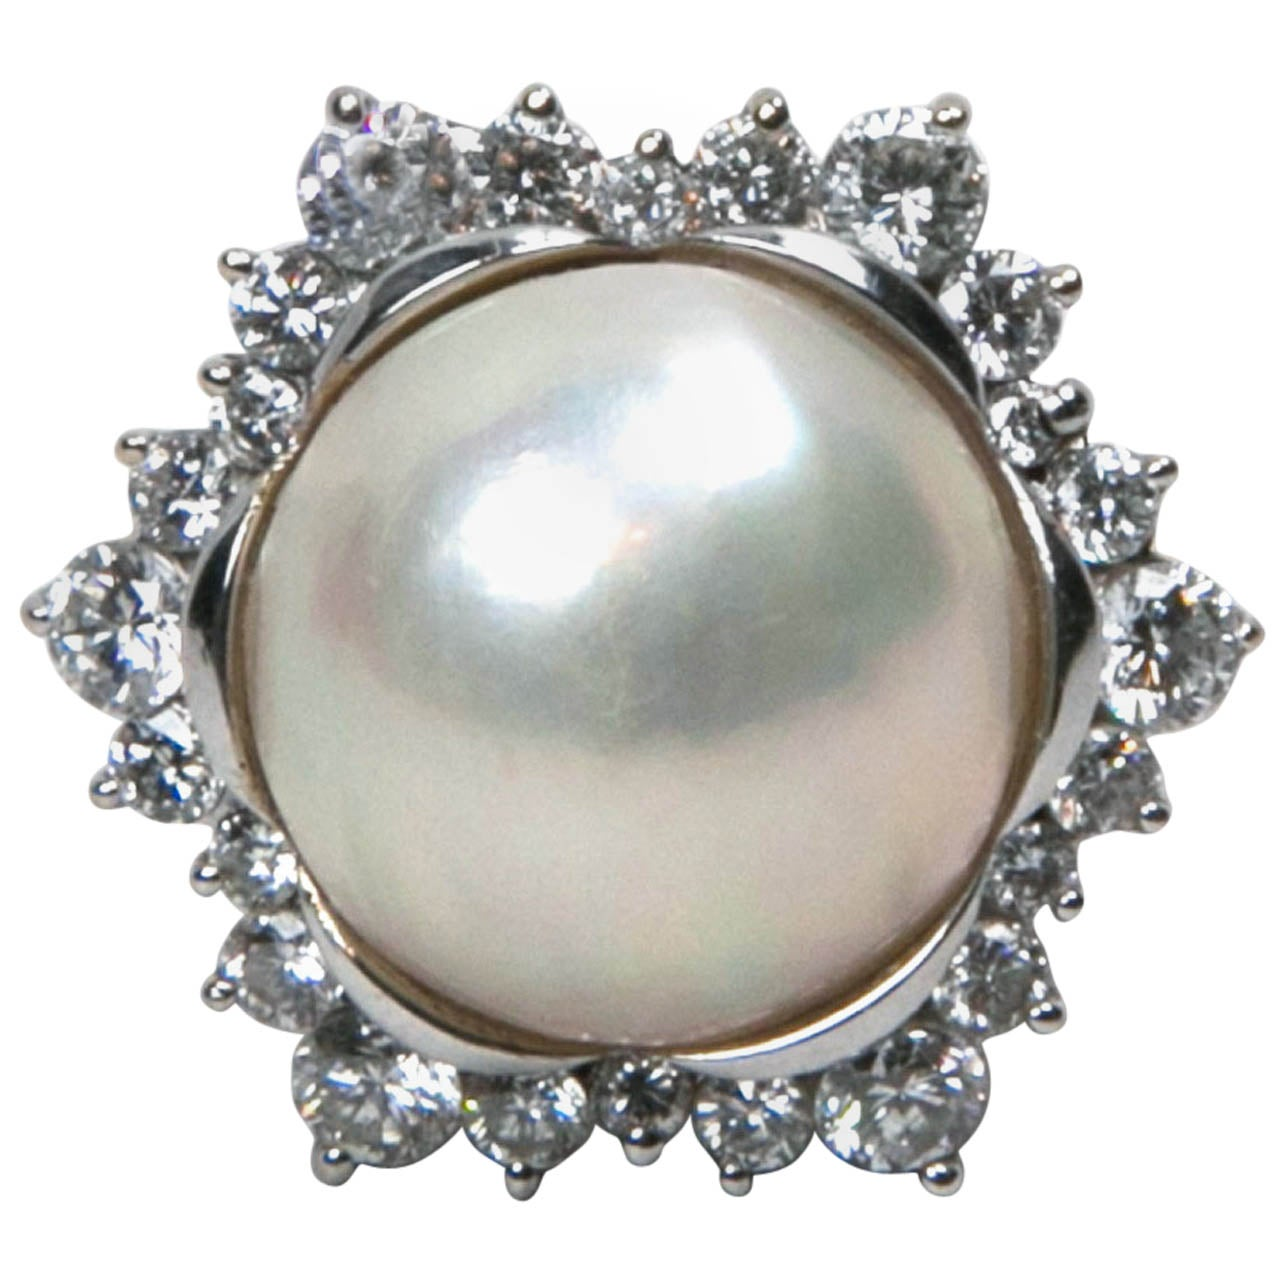 15mm mobe pearl ring with surrounded diamonds set in white